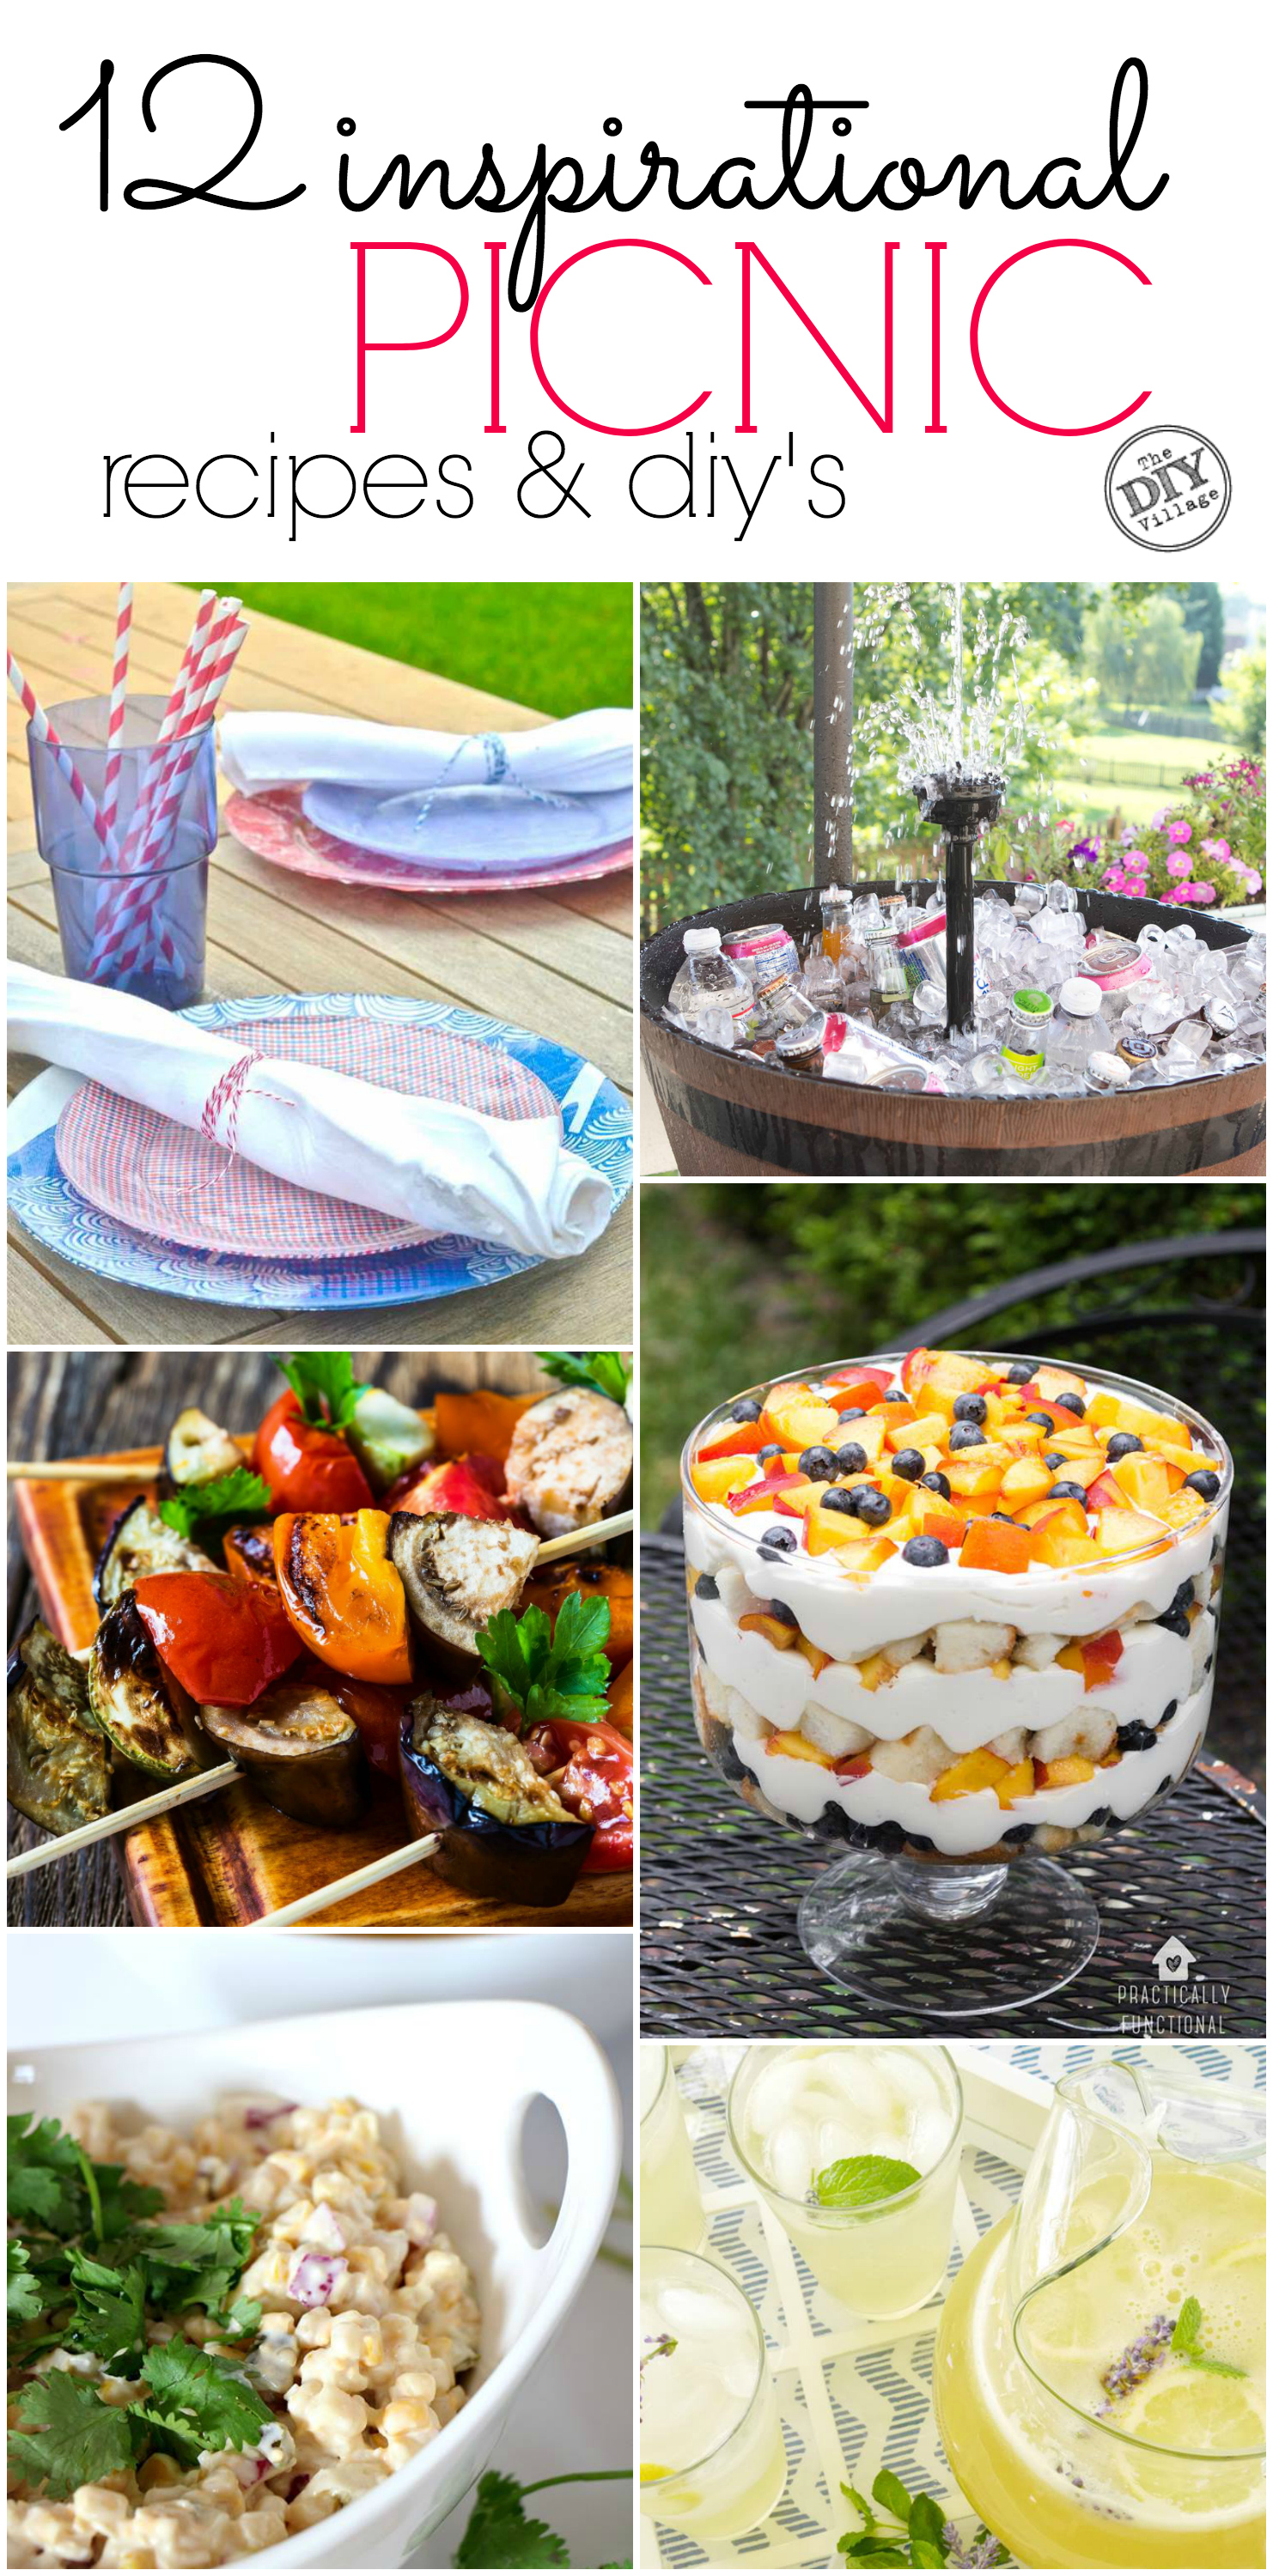 Great ideas for a summer party, picnic, or pretty much any gathering! Great picnic recipes and diy's